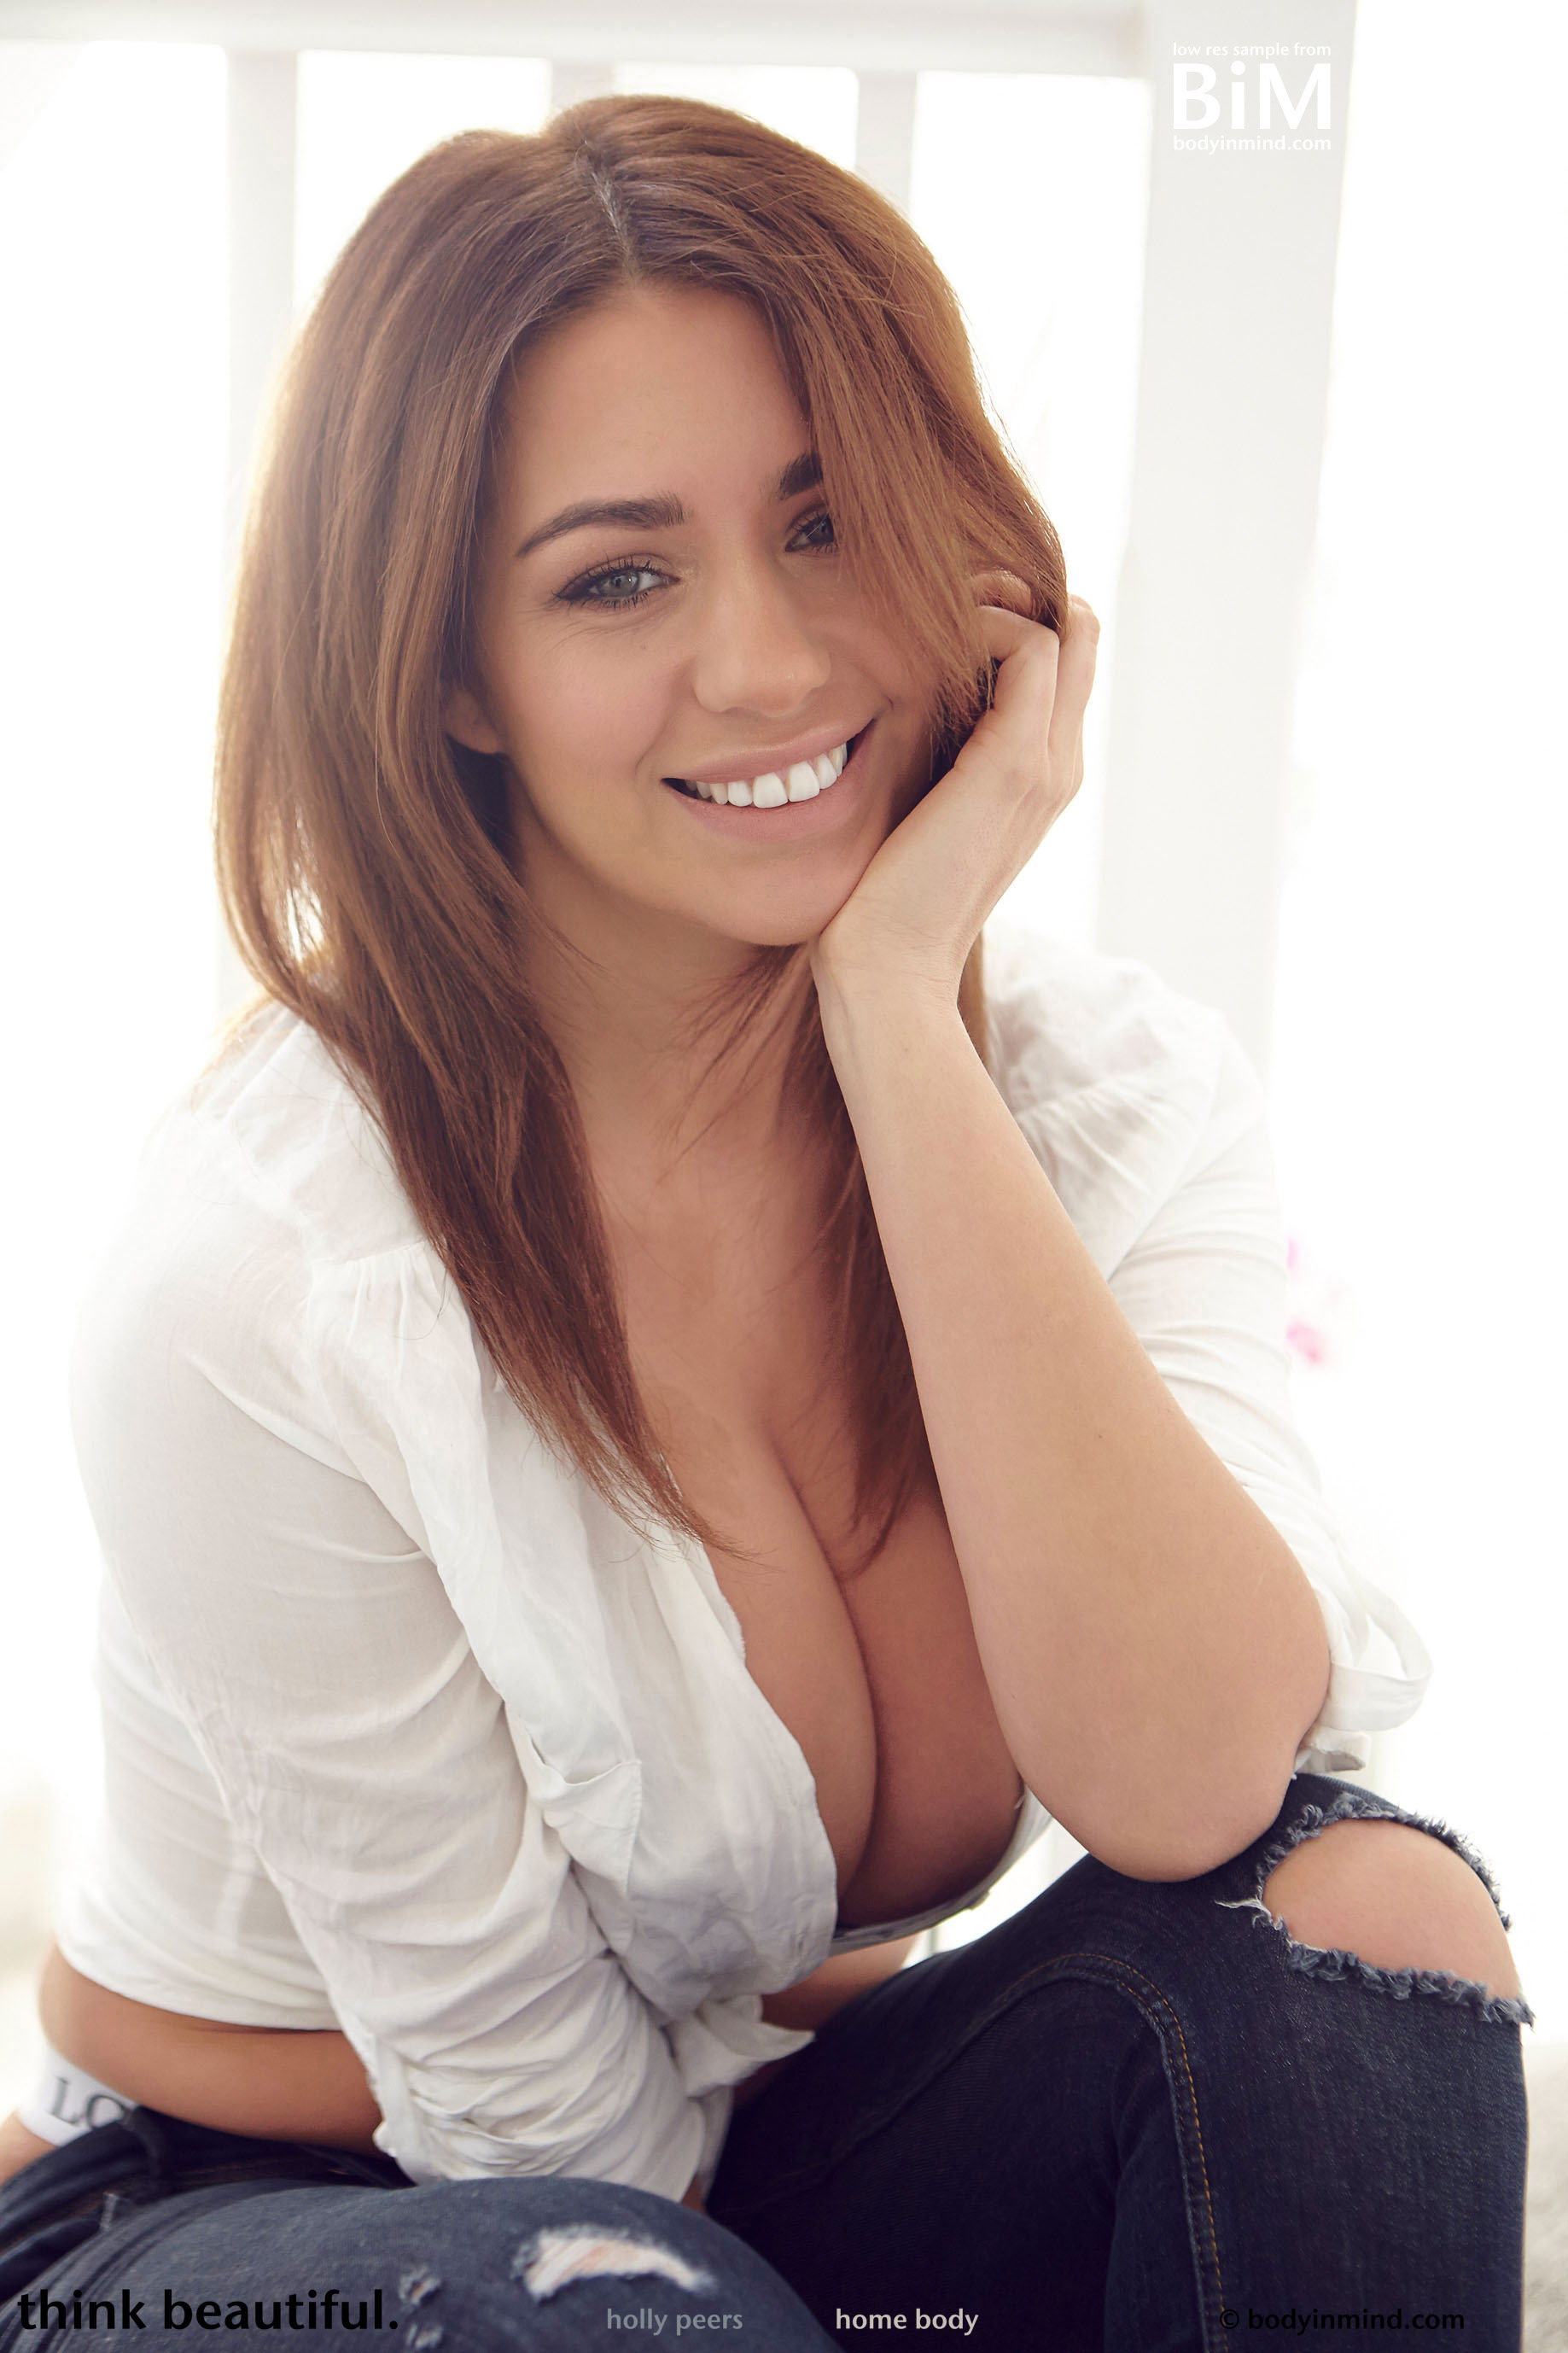 Holly Peers Big Breasts Revealed from White Shirt and Black Bra